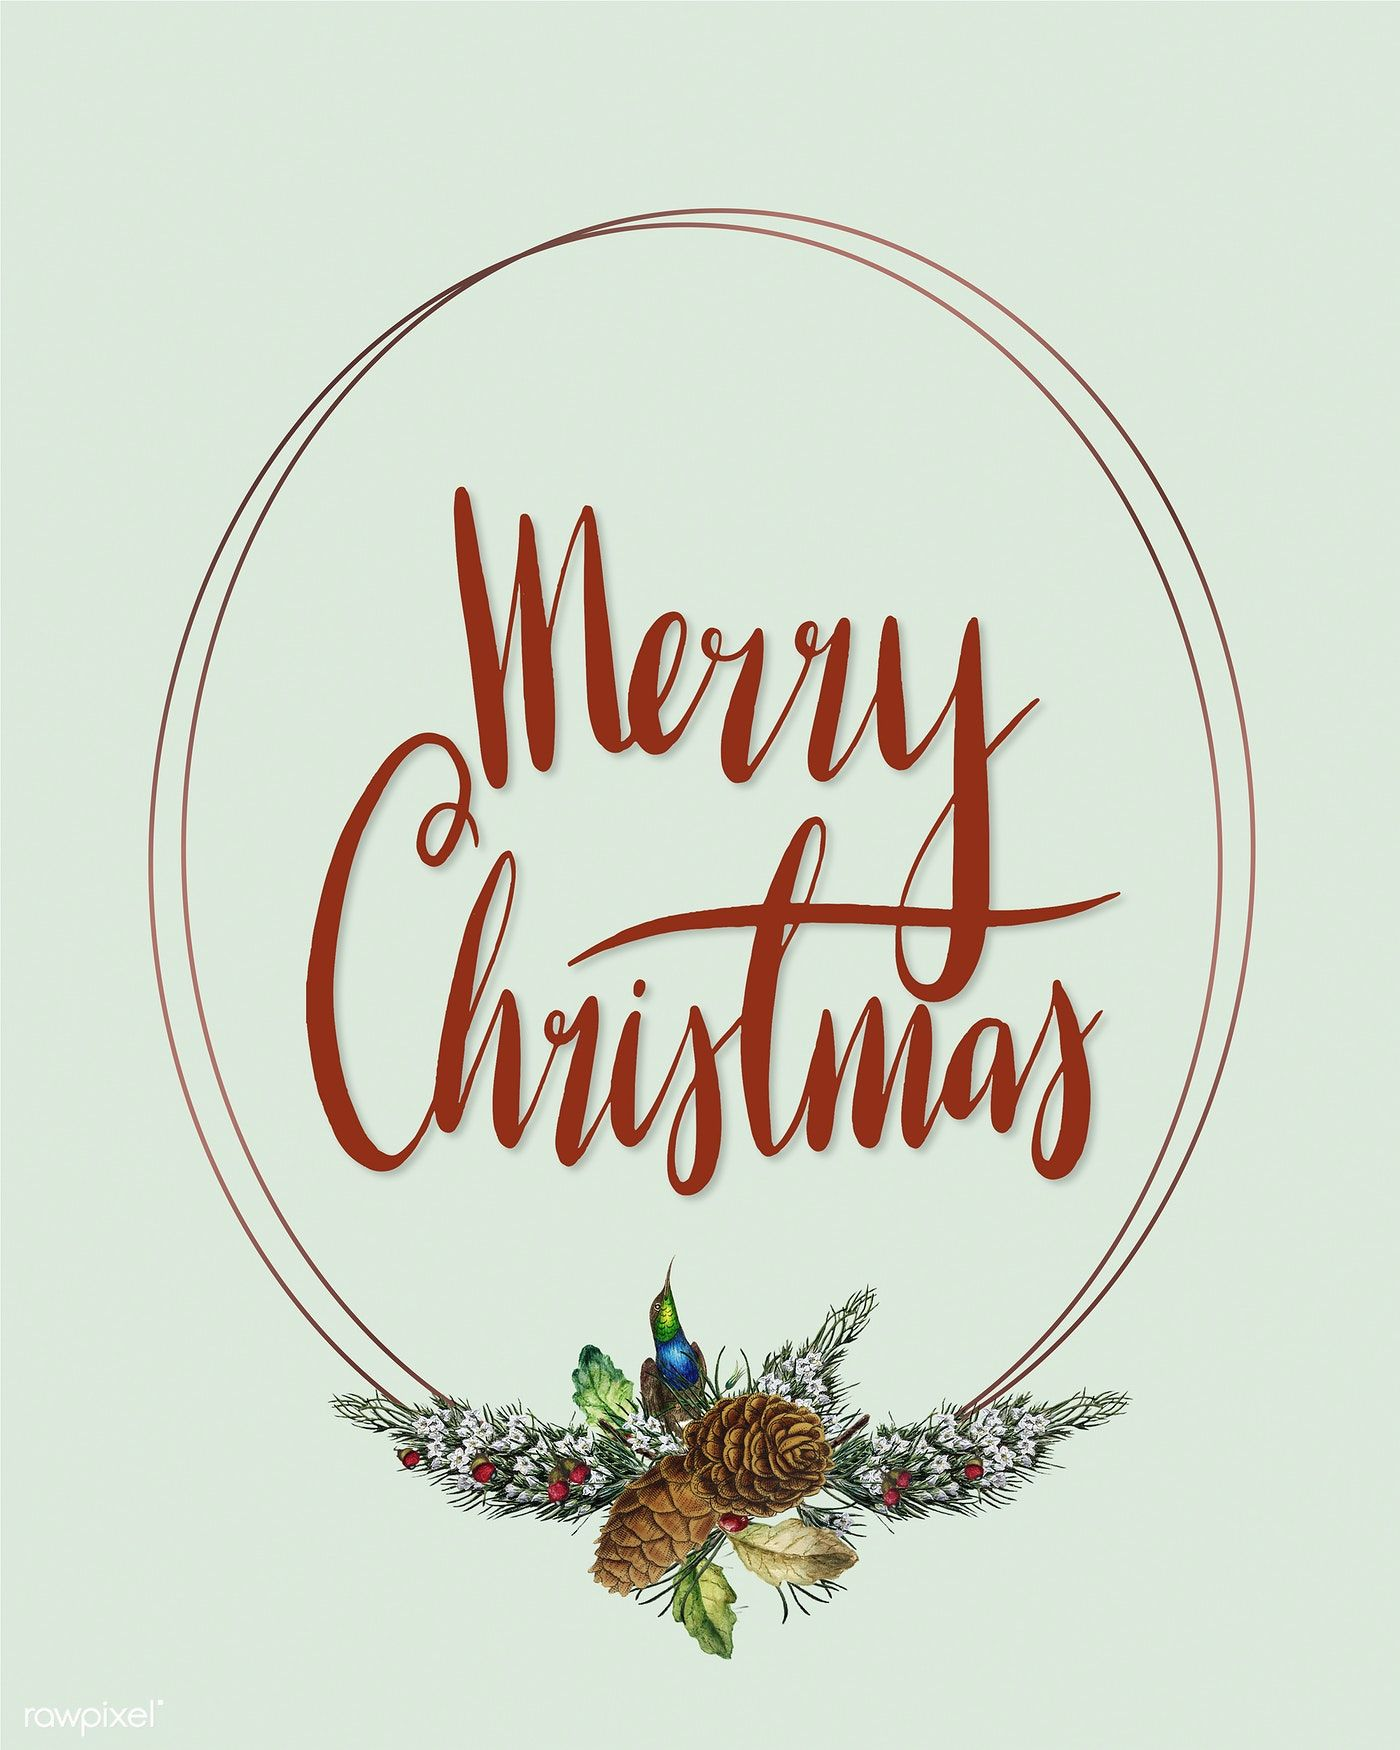 Merry Christmas Card Vector Free Image By Rawpixel Com